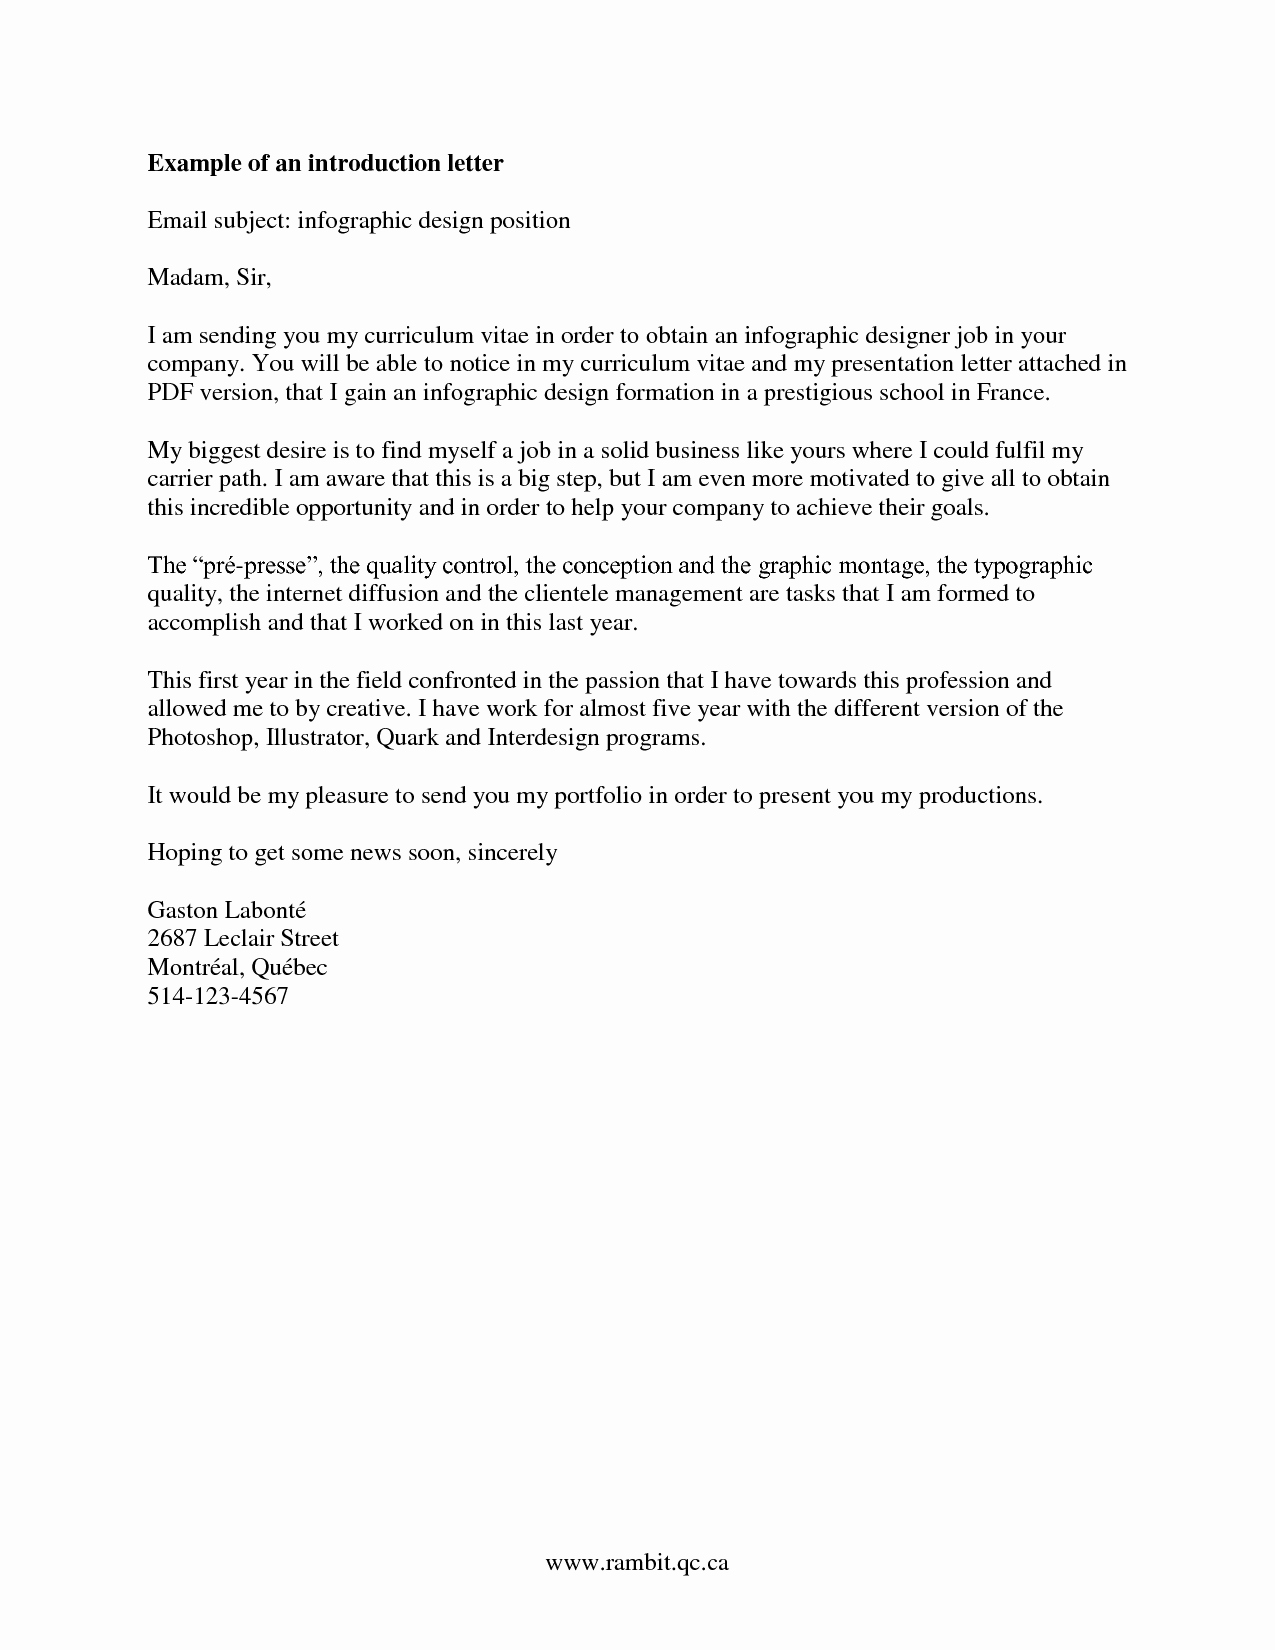 Letter Of Introduction for Employment New Pin by Emma Clifton On Job Intro Letter